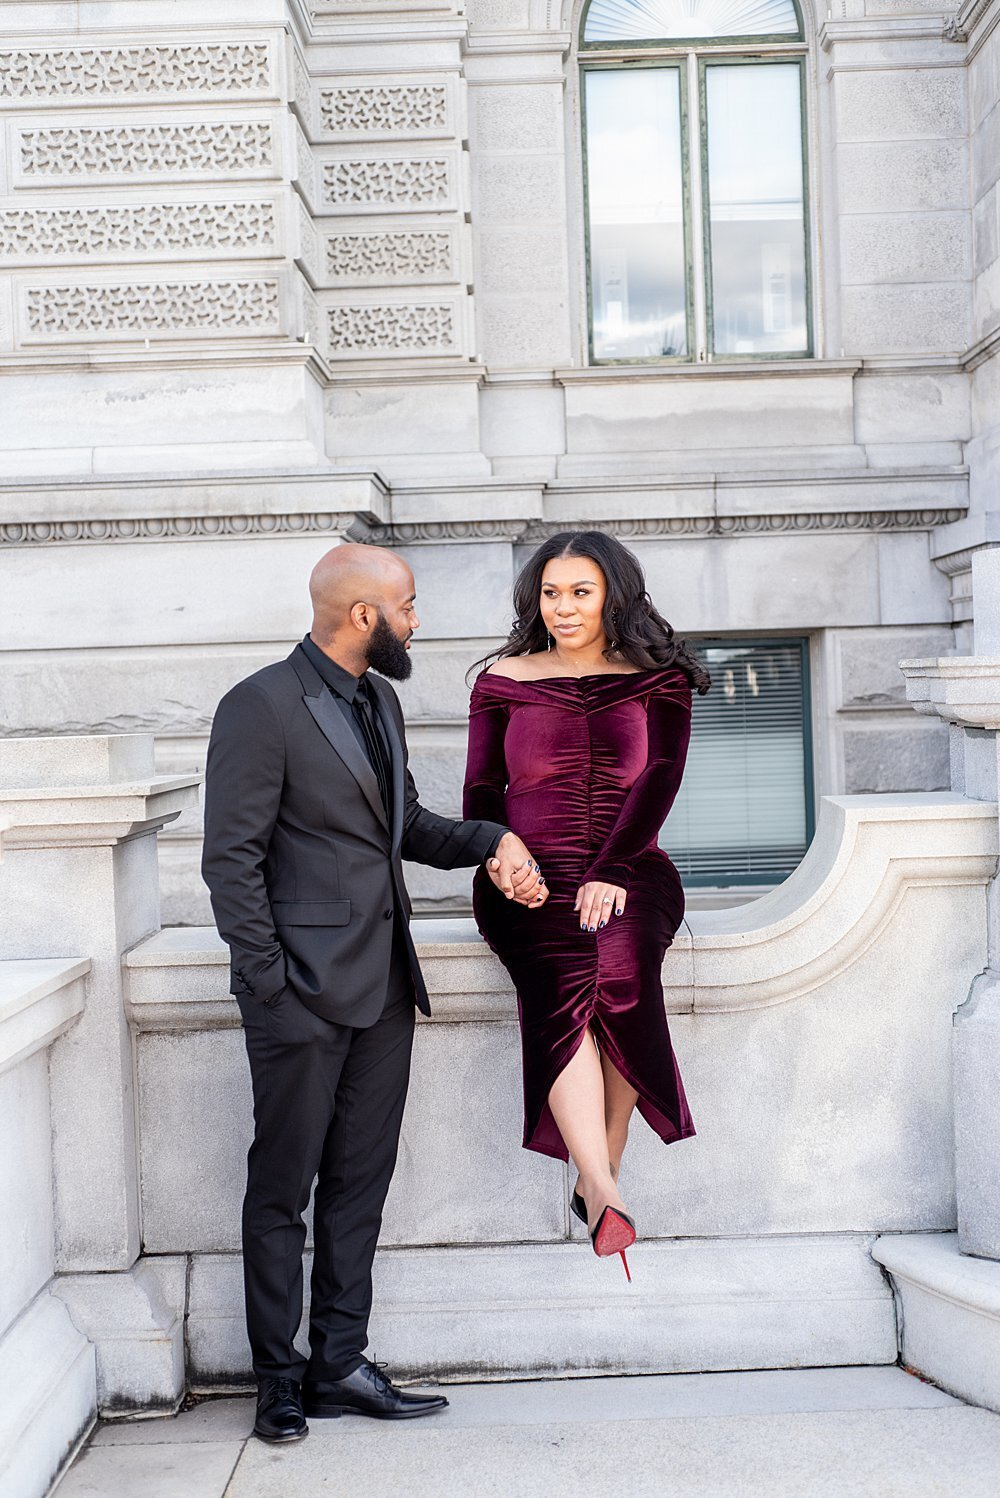 national-gallery-art-engagement-pictures_0004